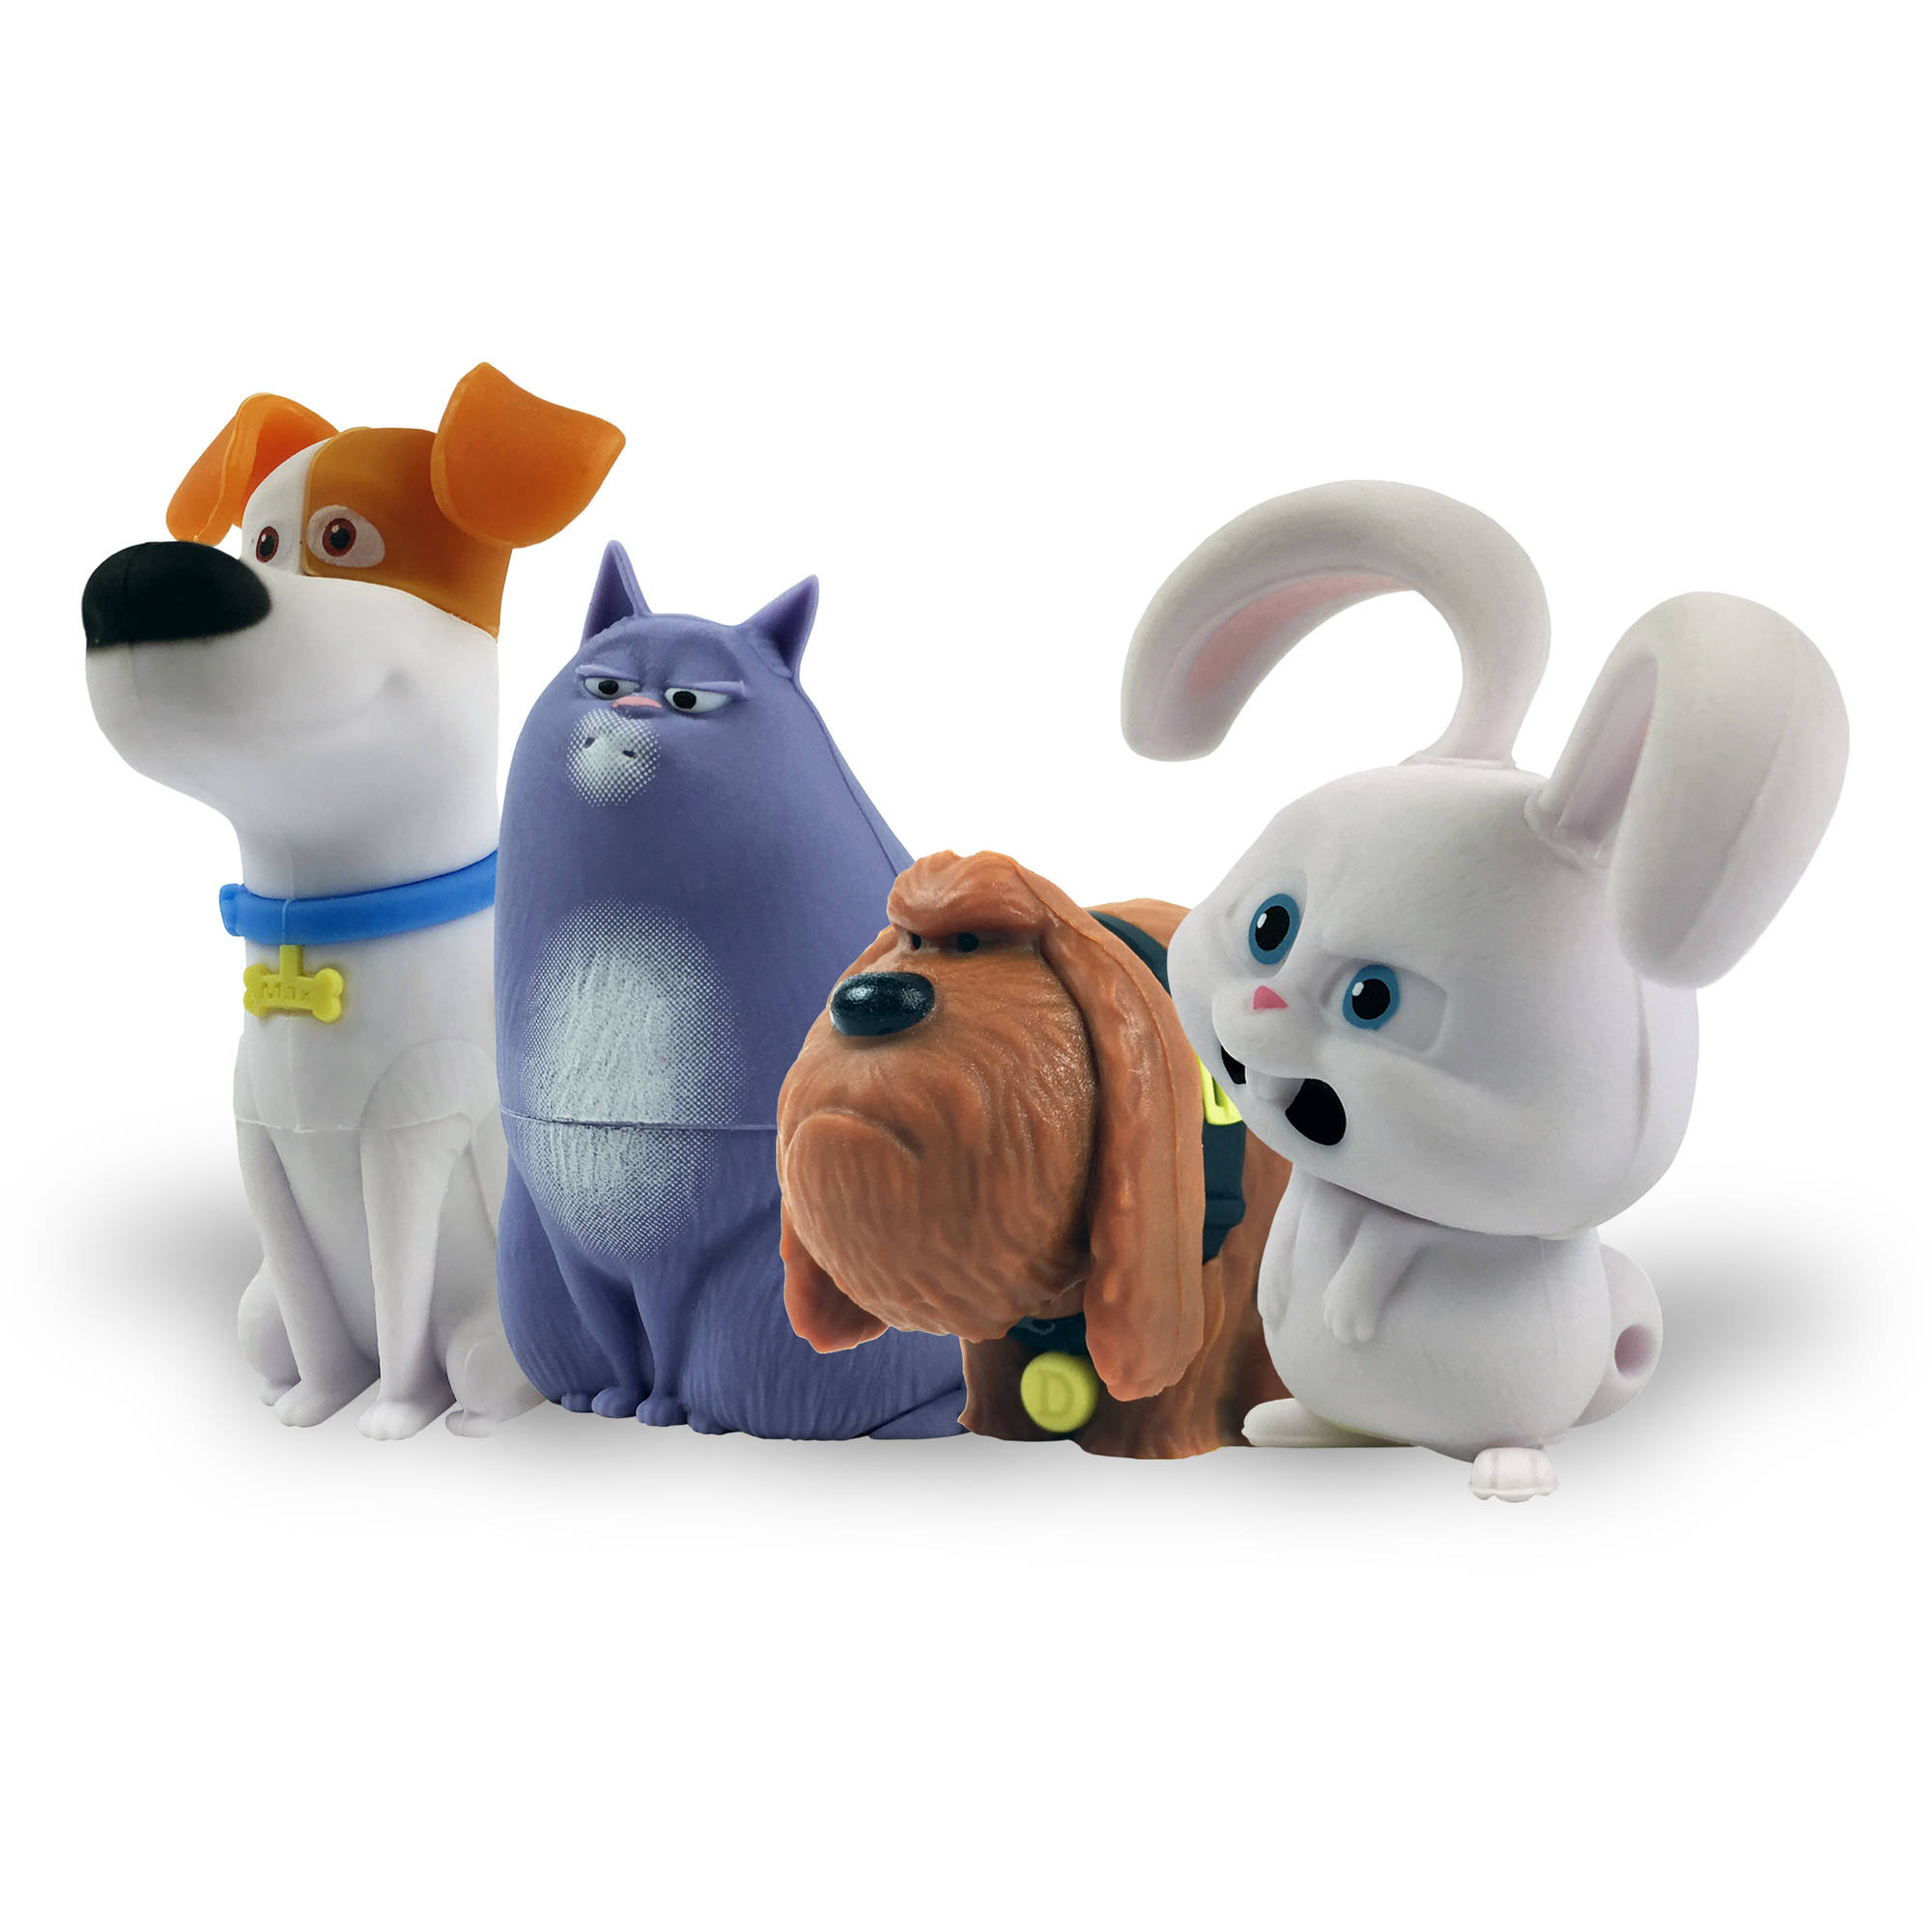 Secret Life of Pets, 4-Pack Character Assortment, 16GB USB Flash Drive